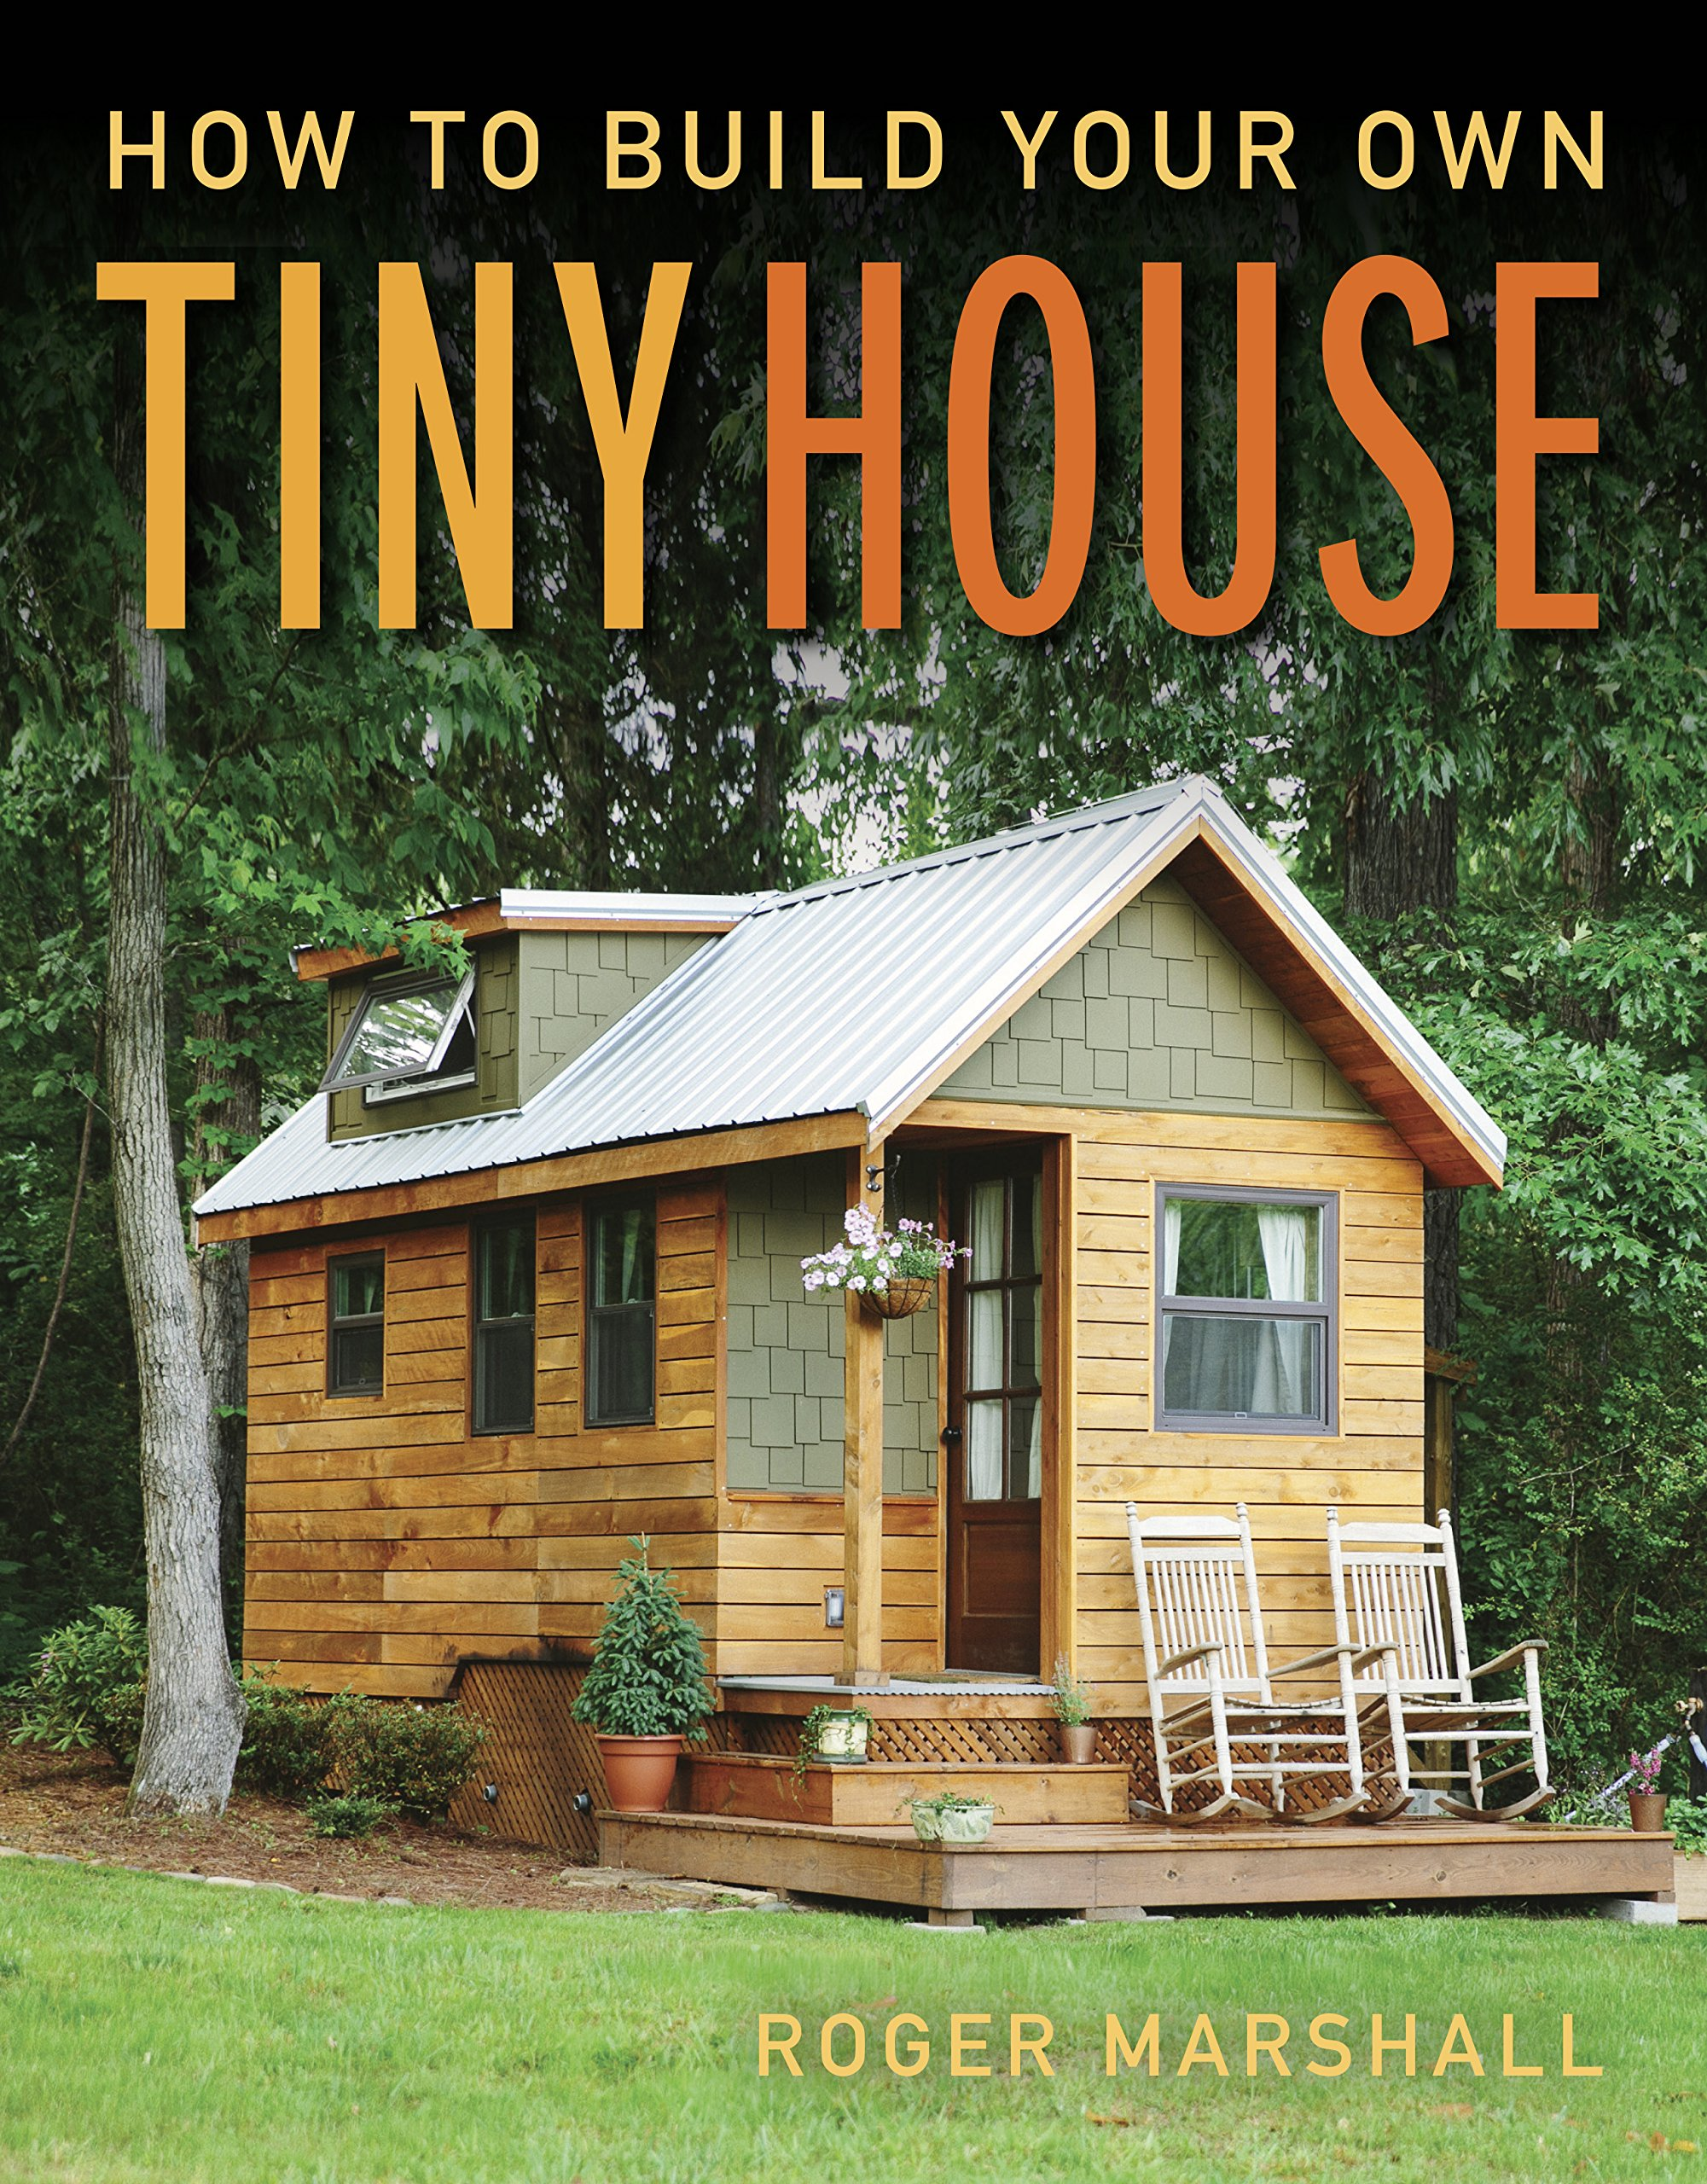 How To Build Your Own Tiny House Roger Marshall 9781631869075